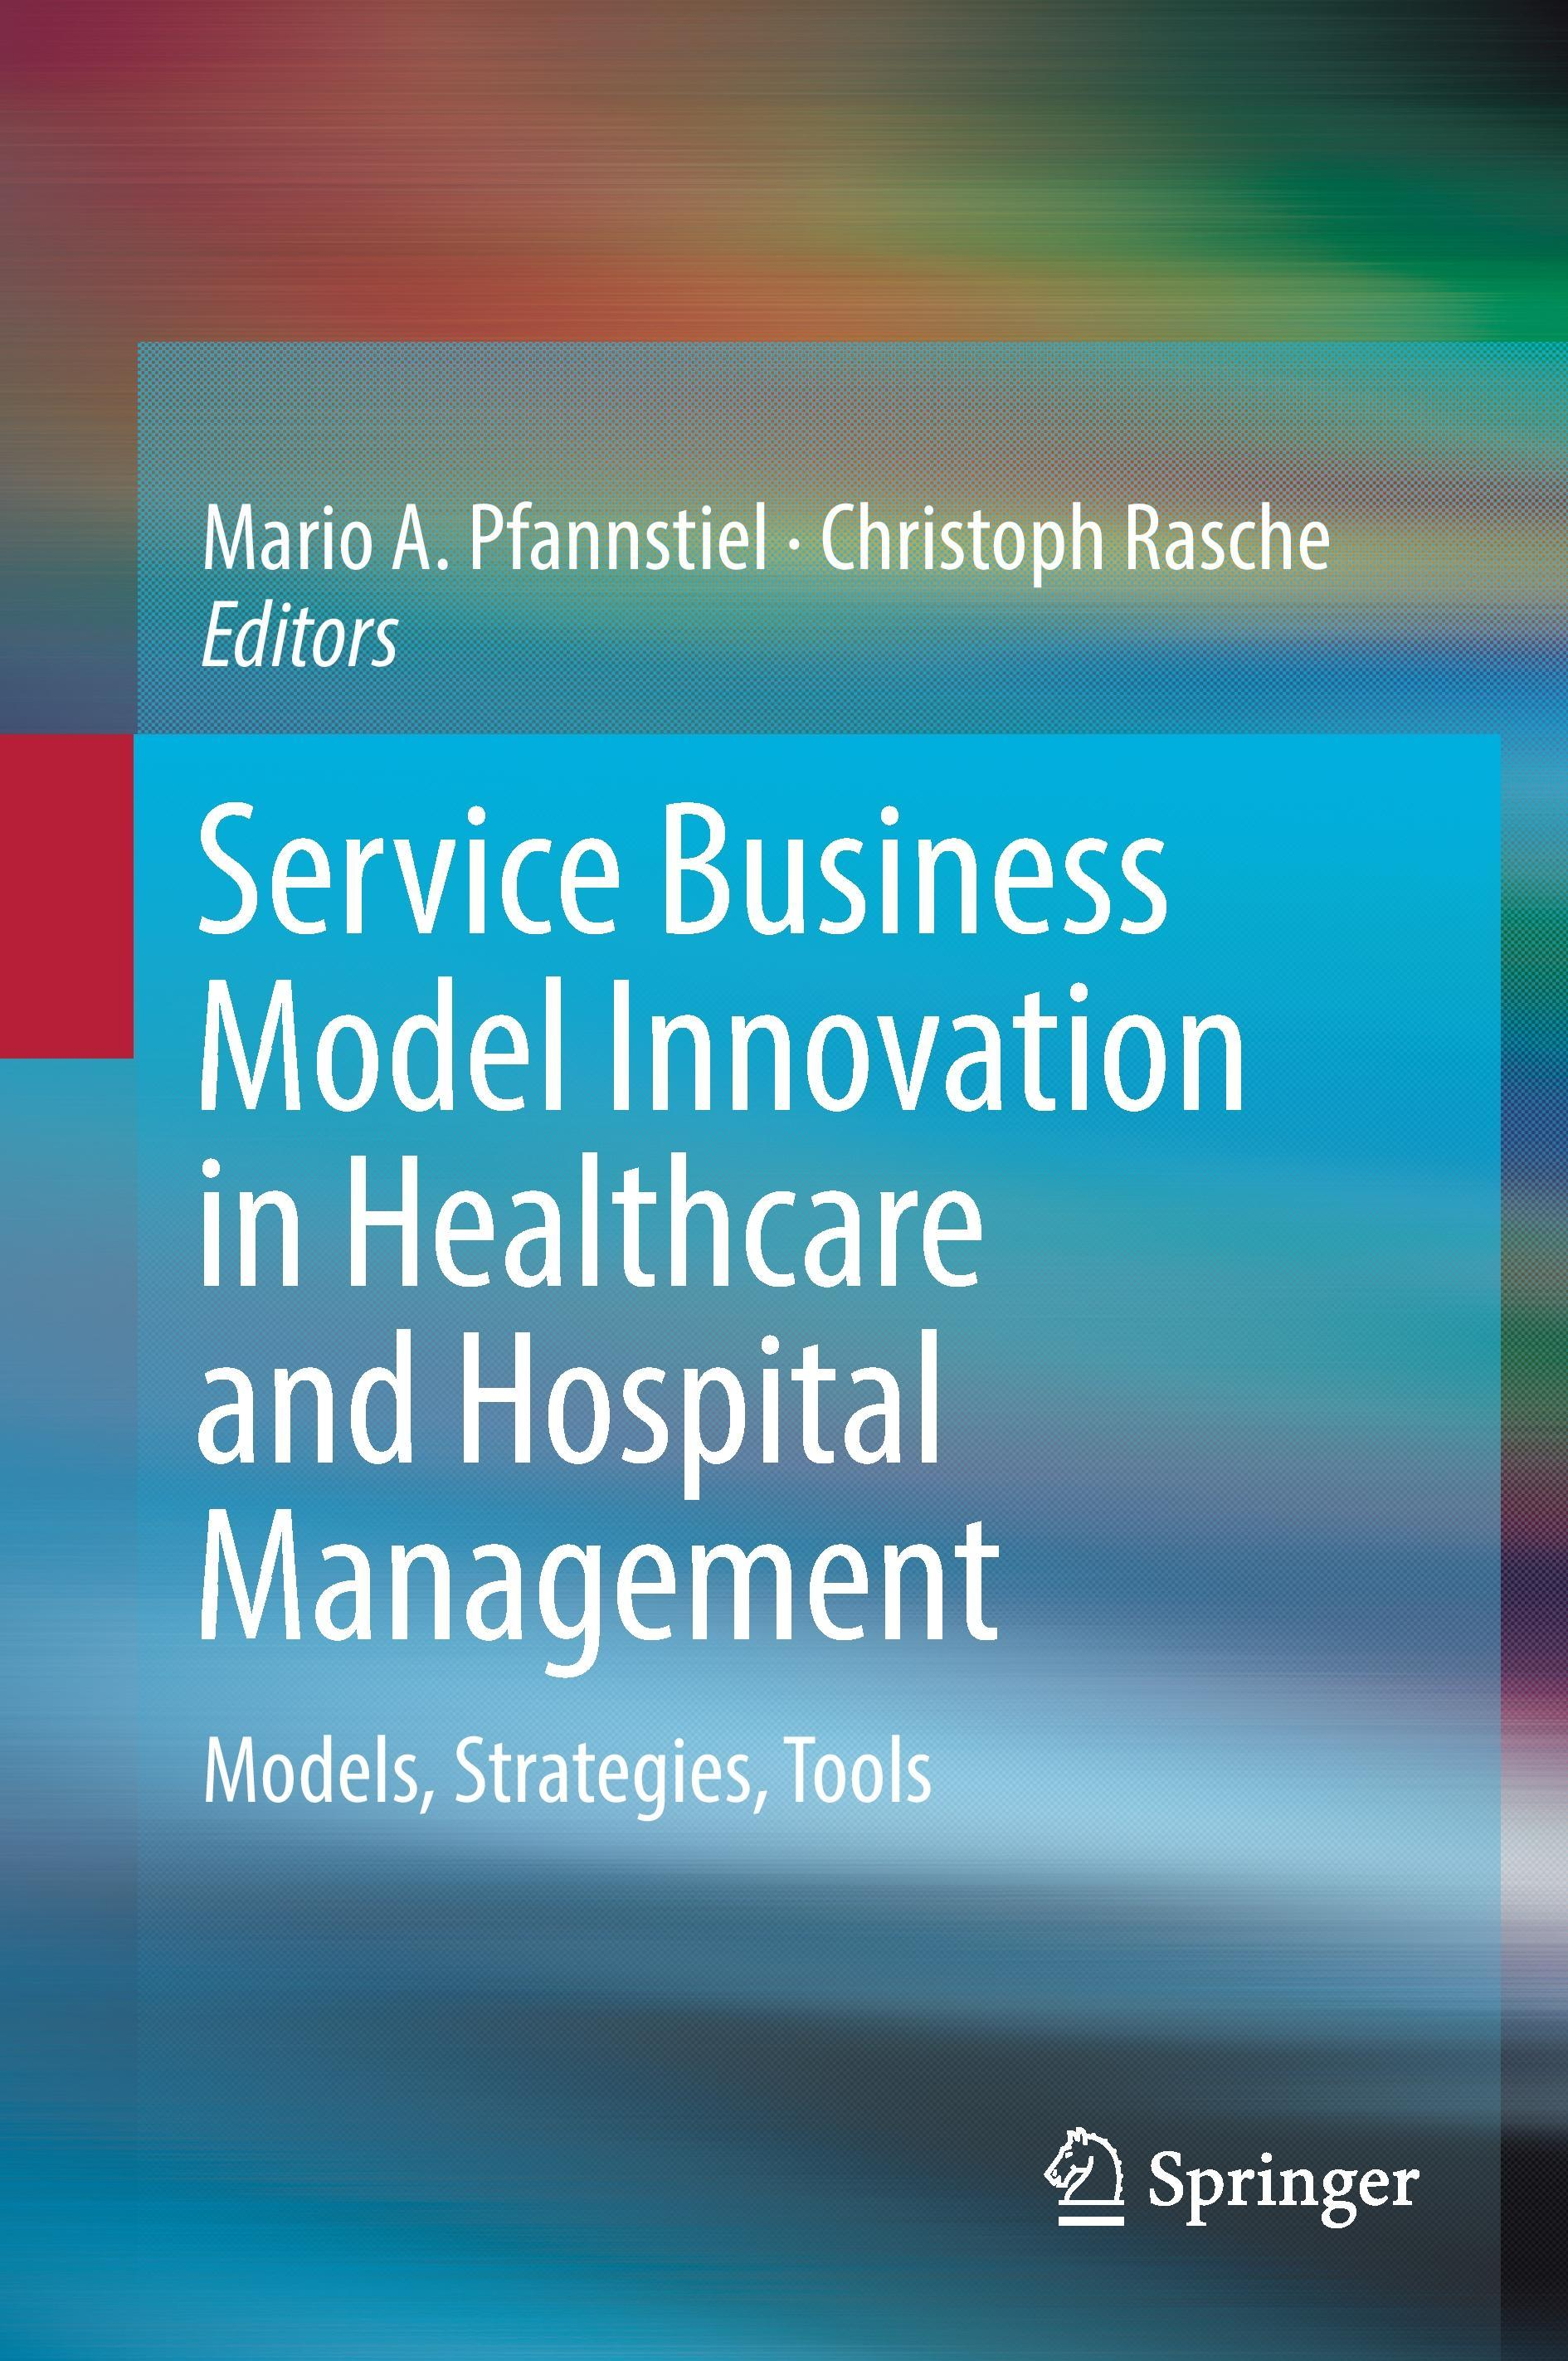 Service Business Model Innovation in the Healthcare and Hospital Management ...